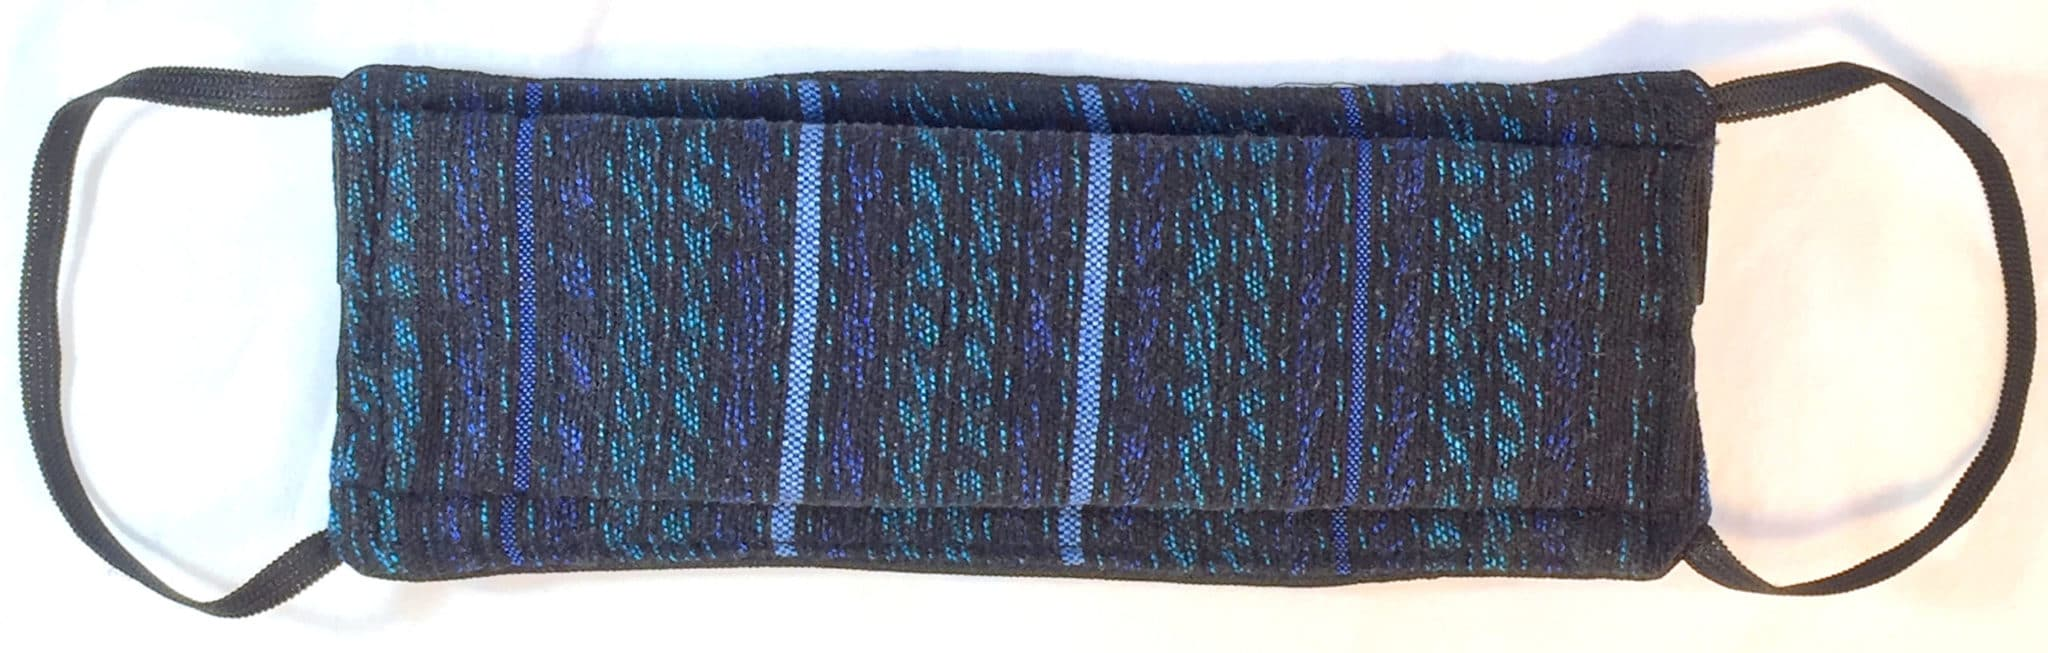 Sapphire, Emerald and Black Jaspe Handwoven Pleated Cotton Mask